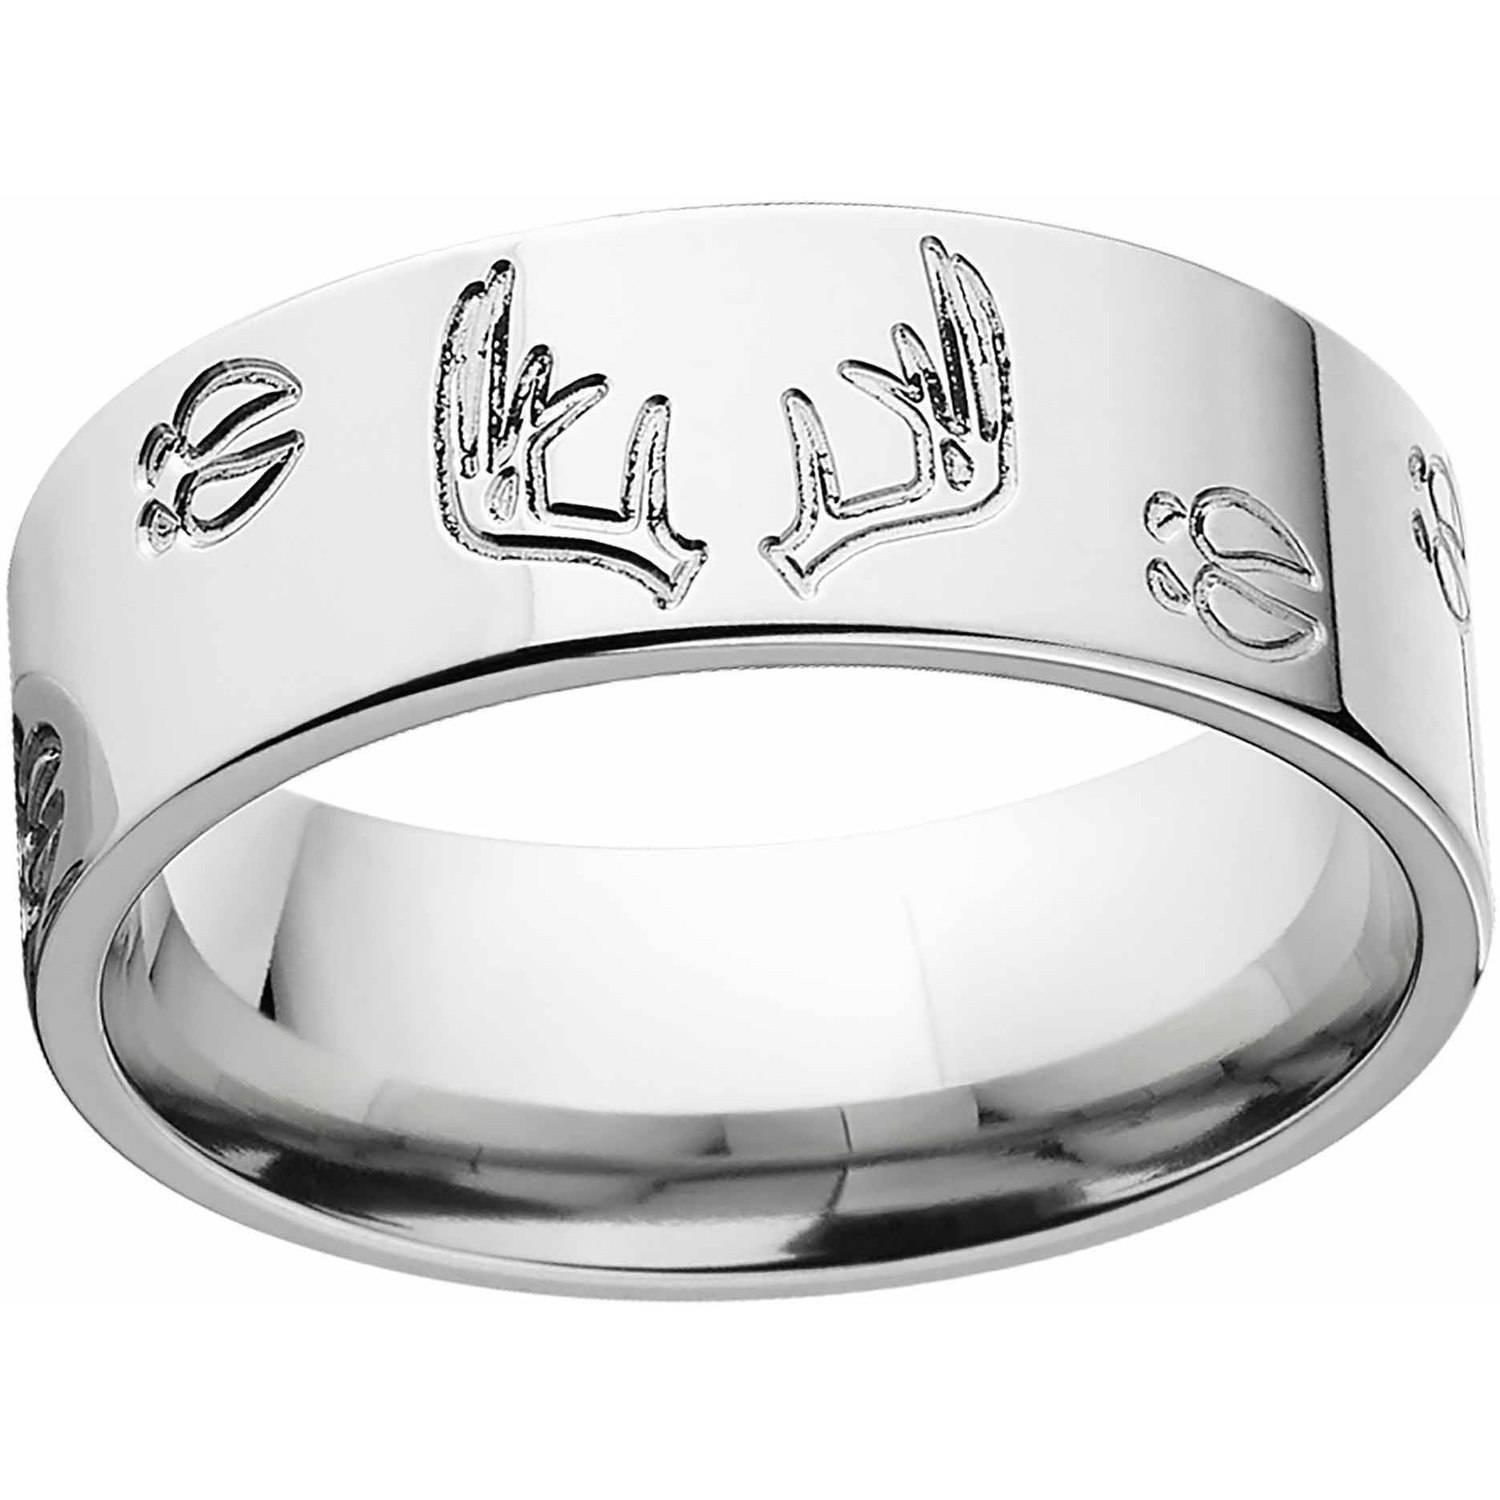 Men s Deer Track and Rack Durable 8mm Stainless Steel Wedding Band